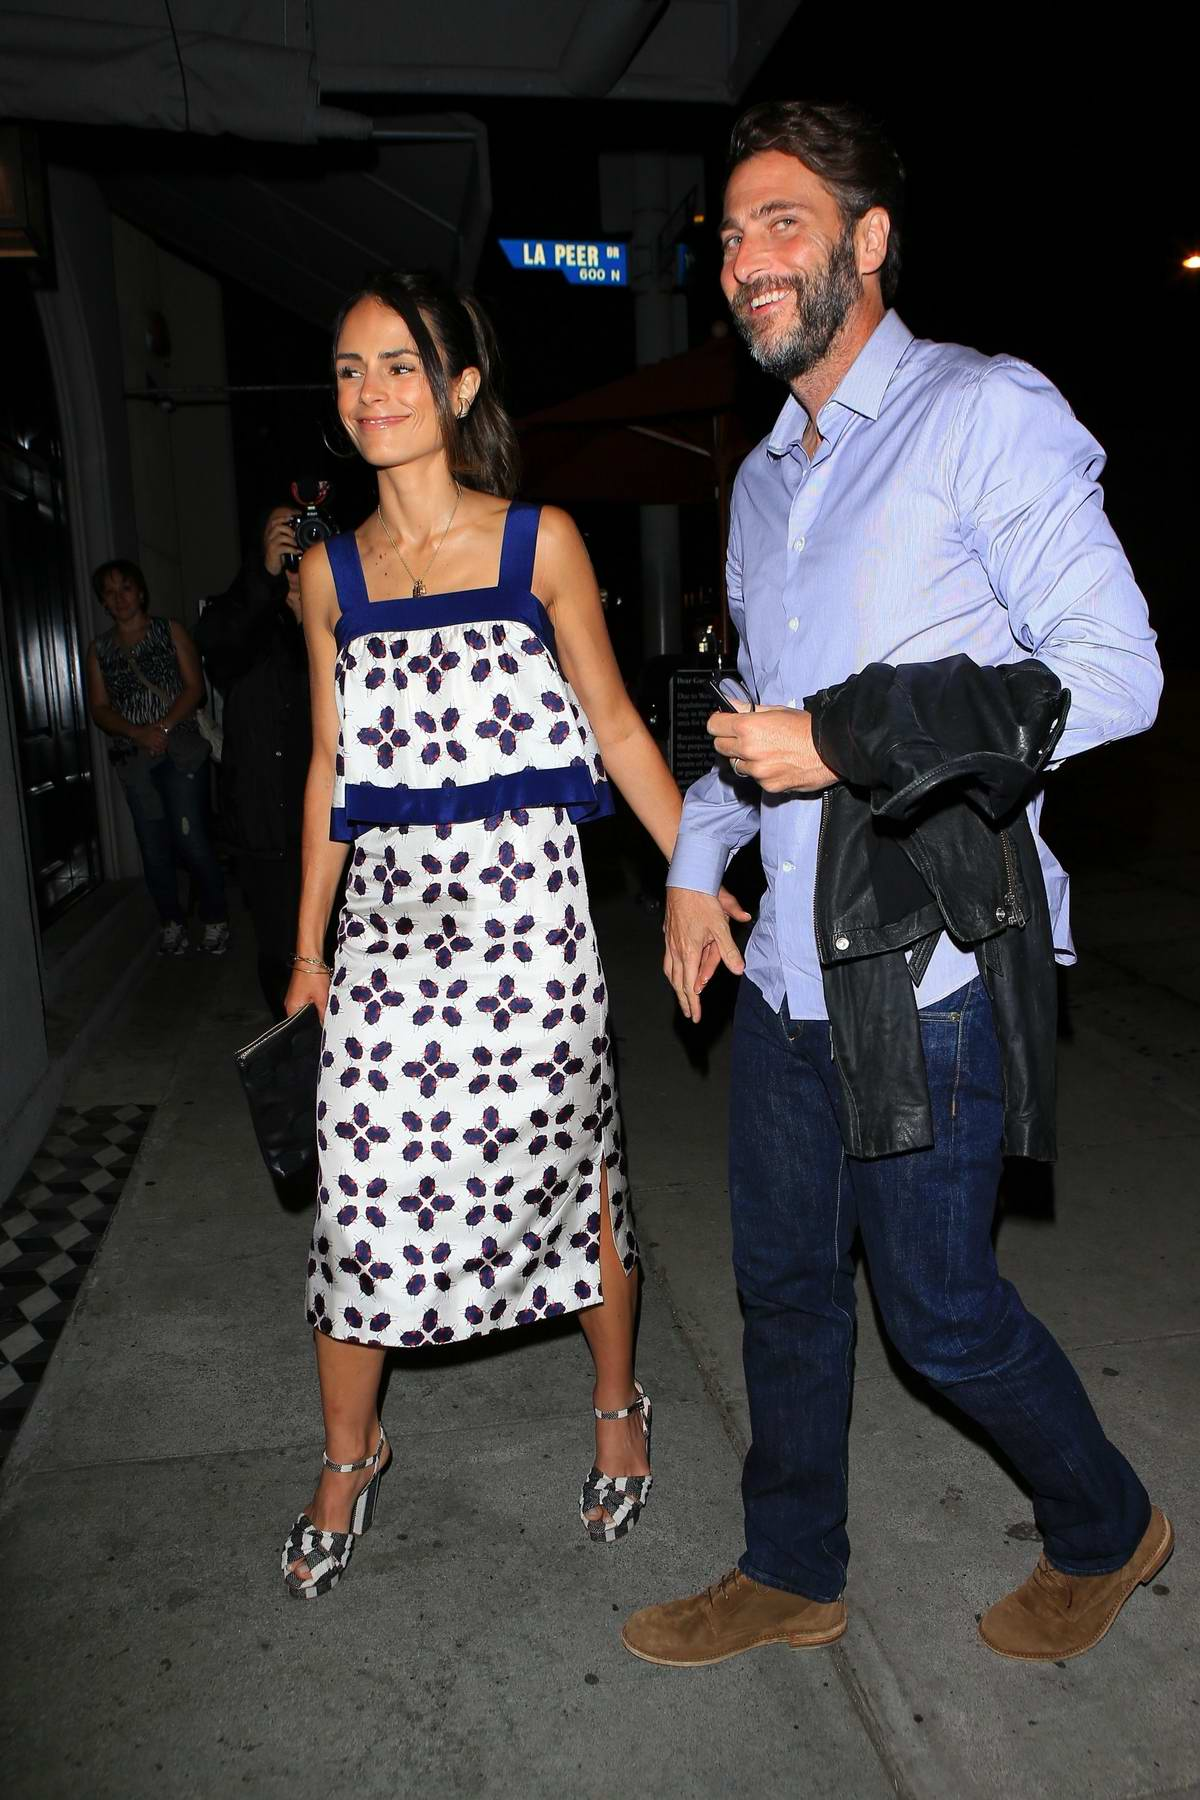 Jordana Brewster arrives for a dinner date with husband Andrew Form at Craigs in West Hollywood, California